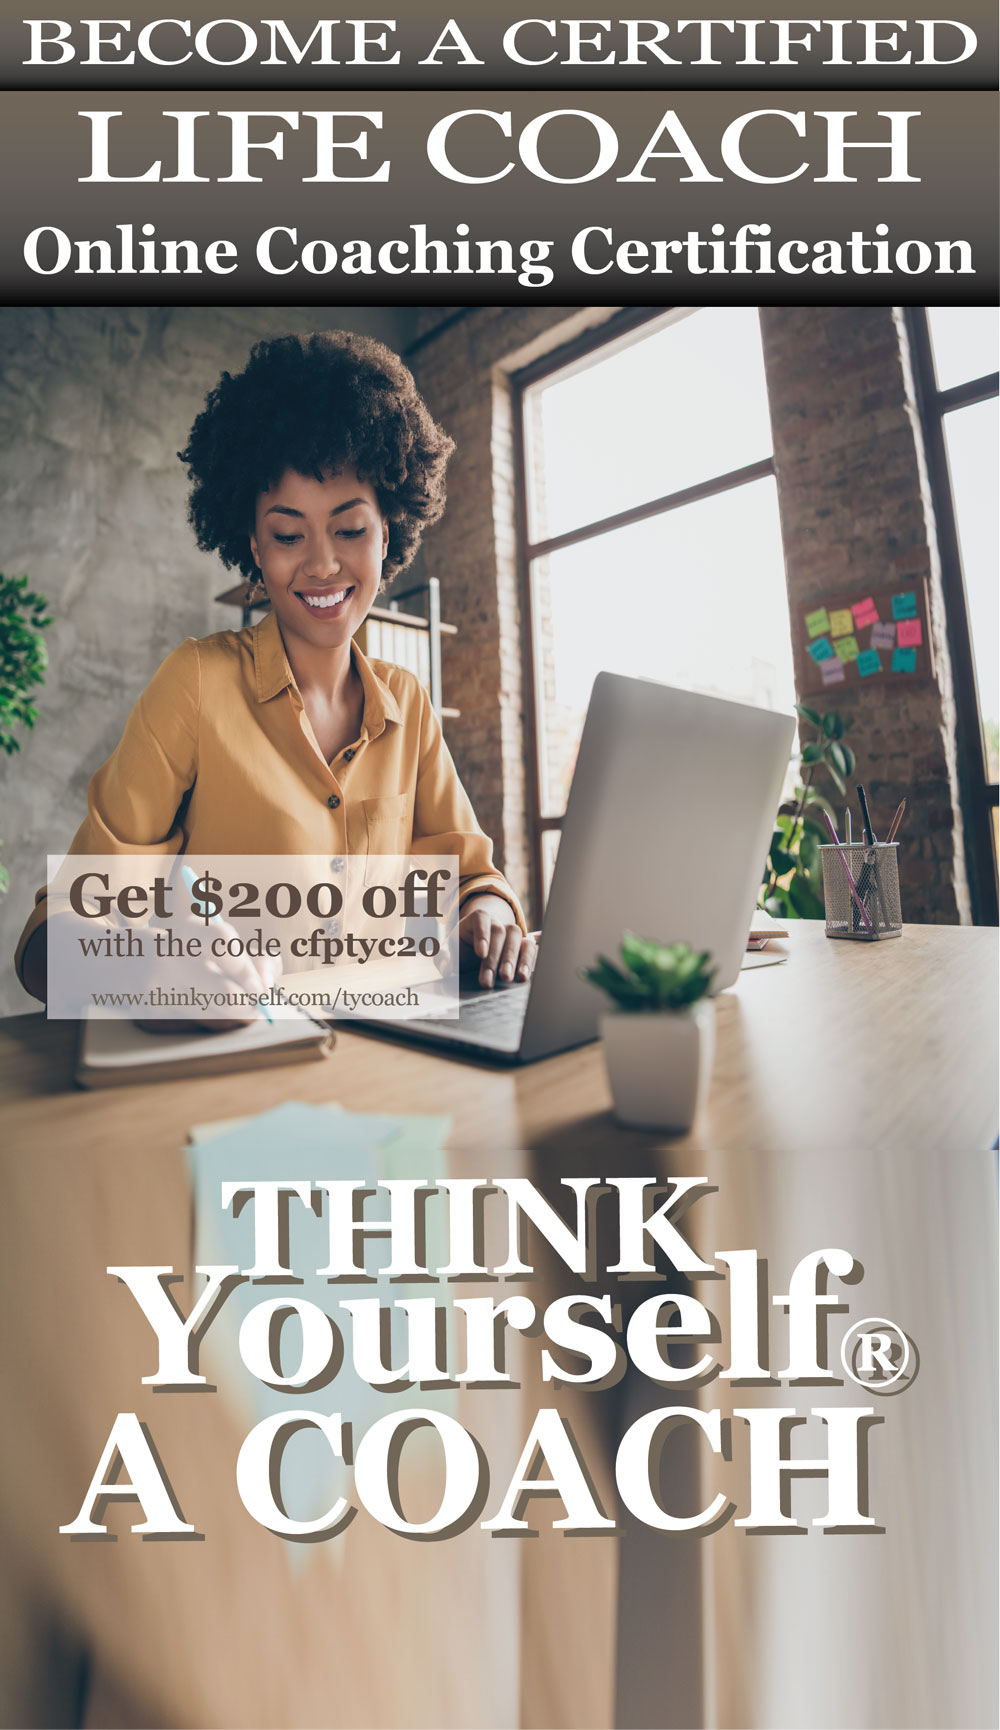 Think yourself academy carousel ad banner